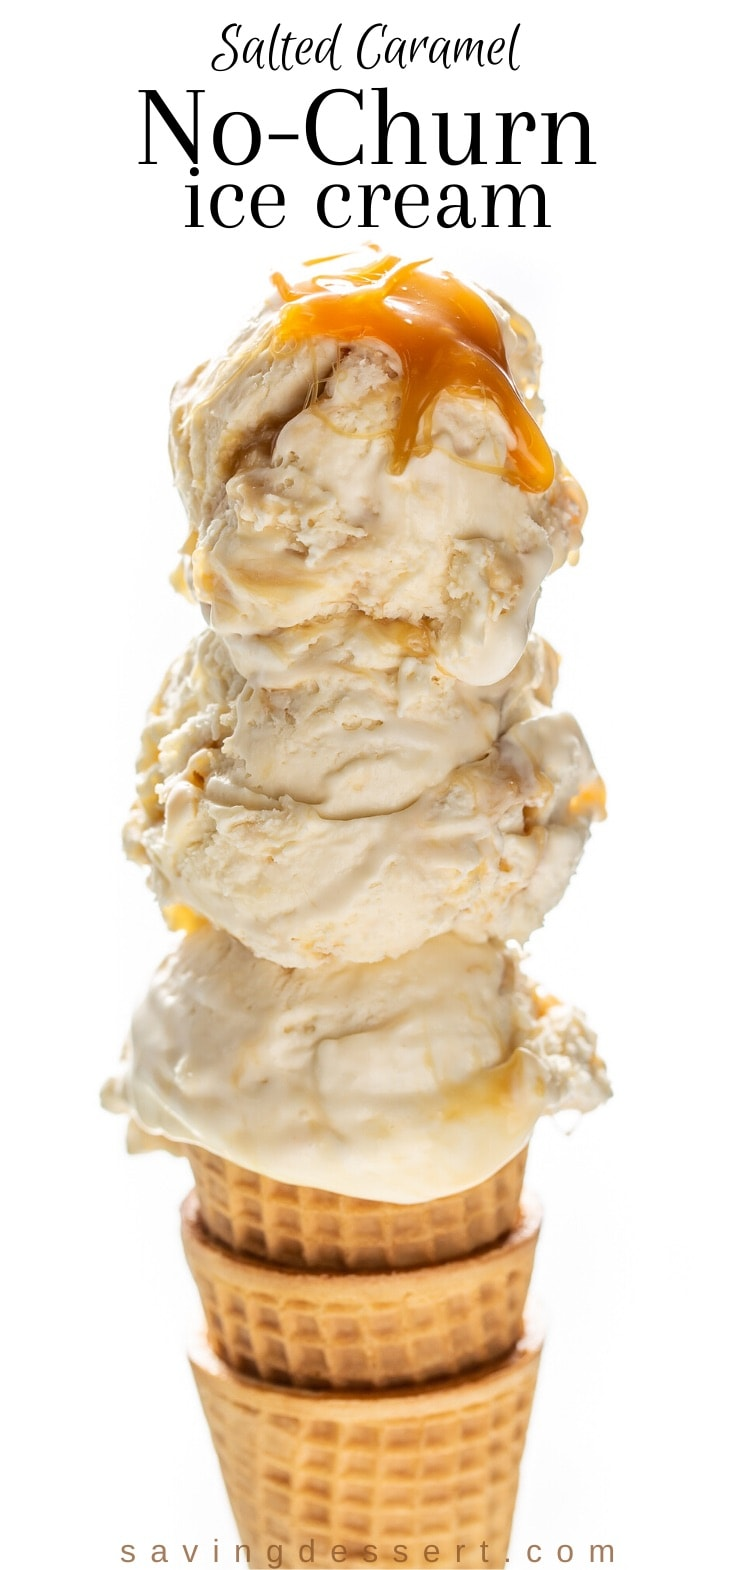 An ice cream cone with three big scoops of no-churn ice cream with salted caramel